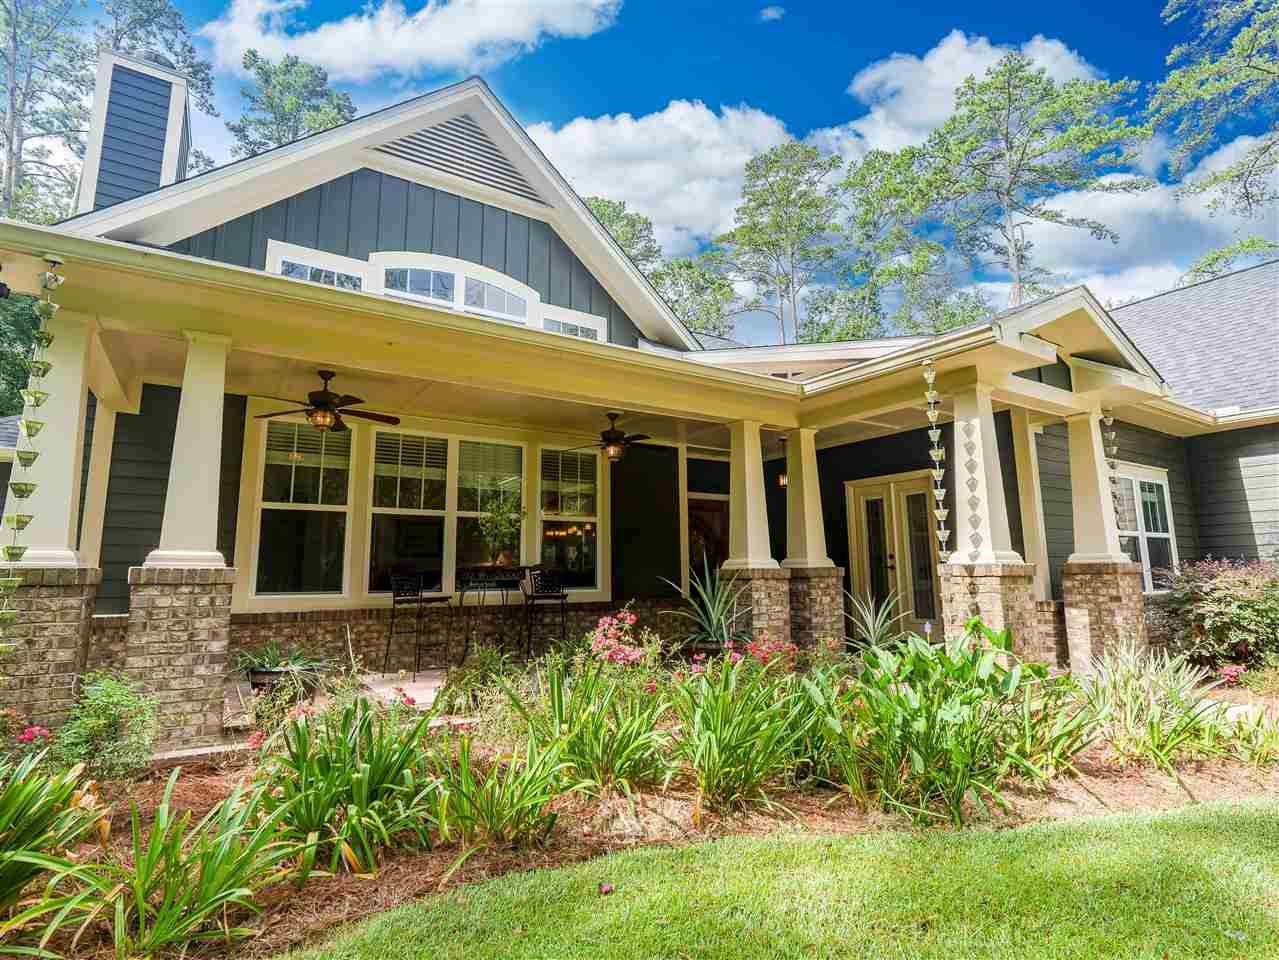 Photo of 3565 Lakeshore Drive, TALLAHASSEE, FL 32312 (MLS # 322101)